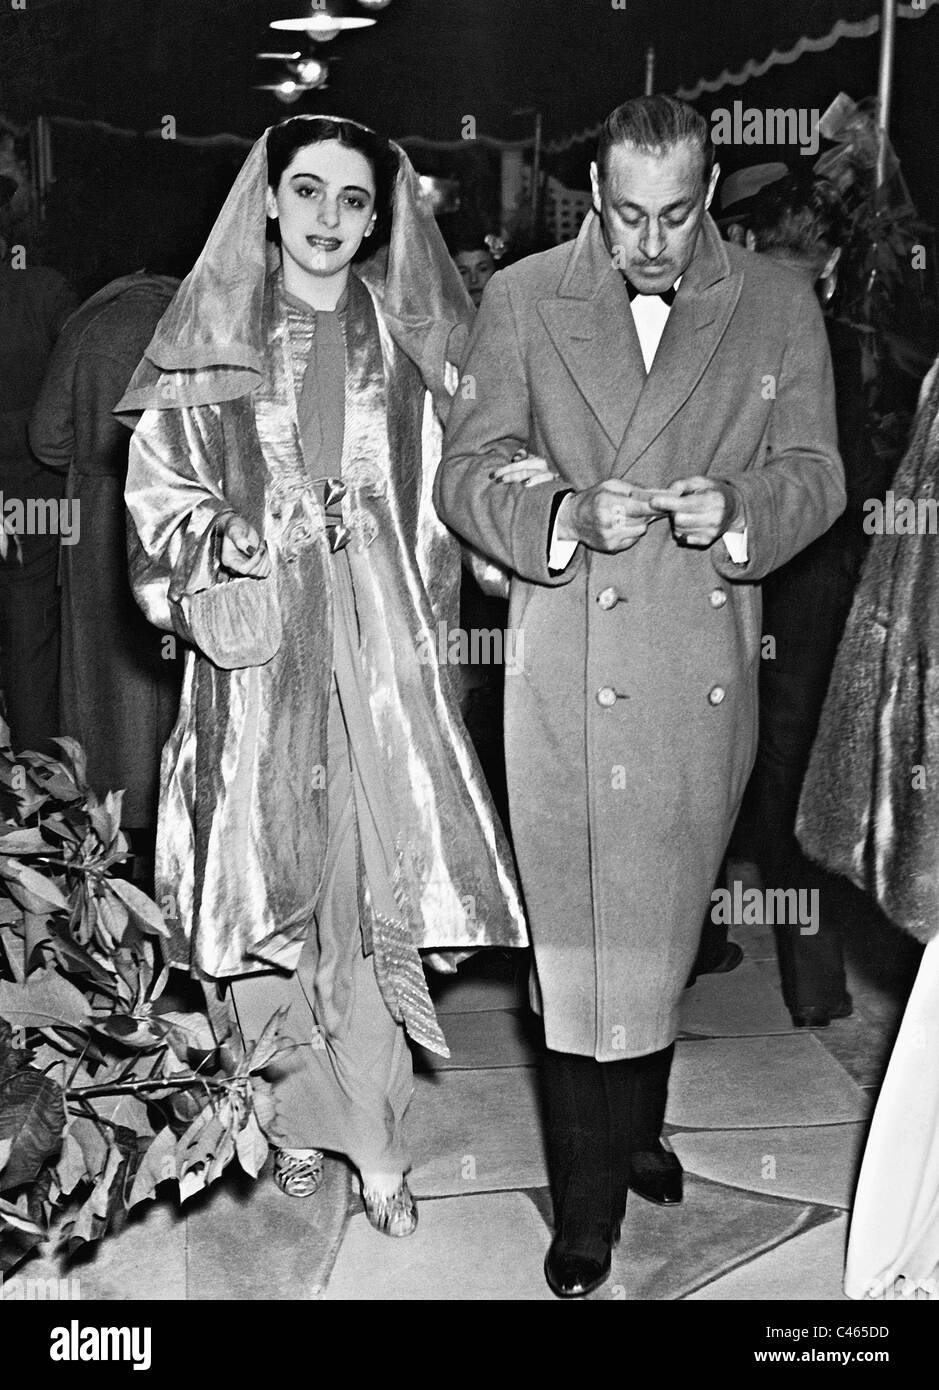 John Barrymore and Elaine Barry, 1936 - Stock Image